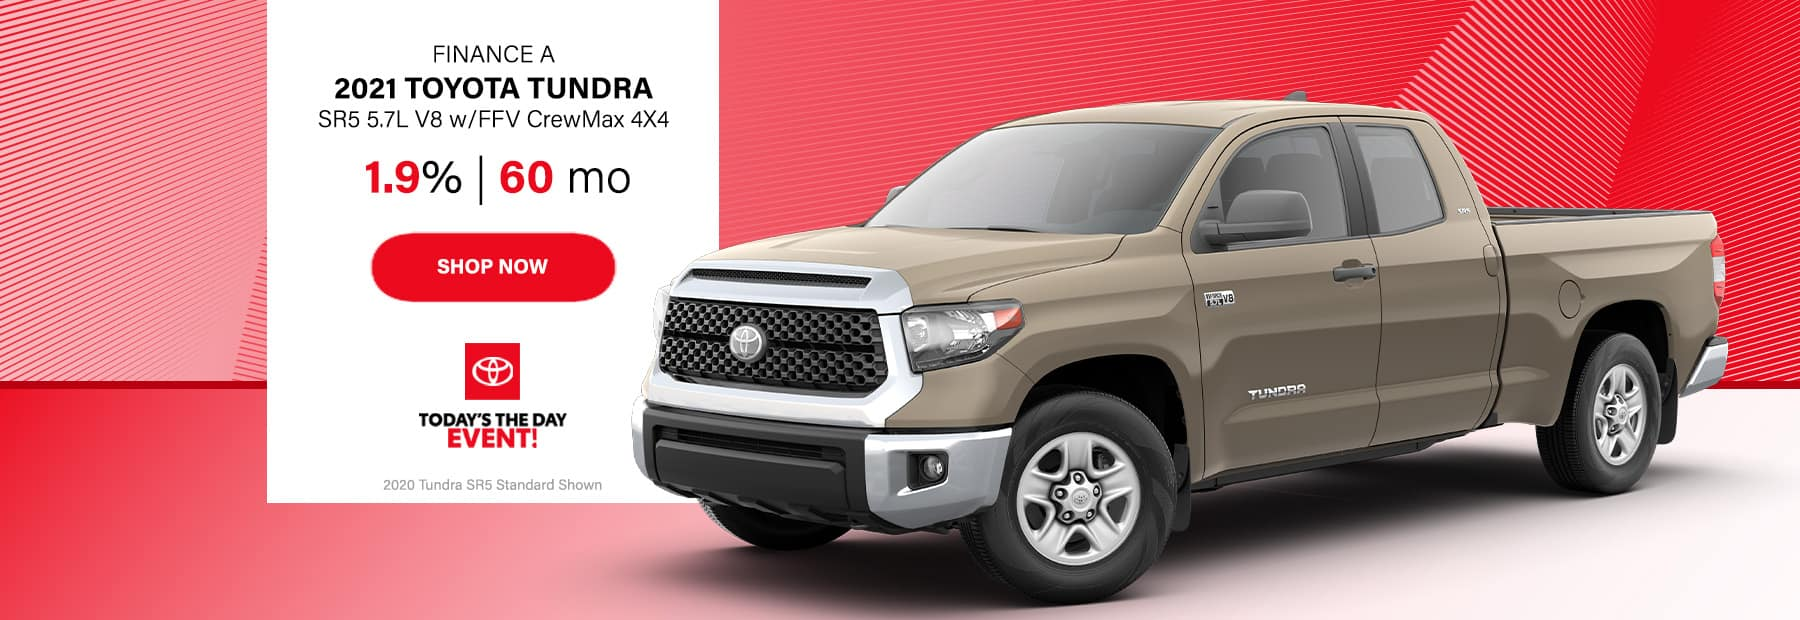 Finance a 2021 Toyota Tundra SR5 5.7L V8 w/FFV CrewMax 4x4 Pickup Truck at 1.9% for 60 months